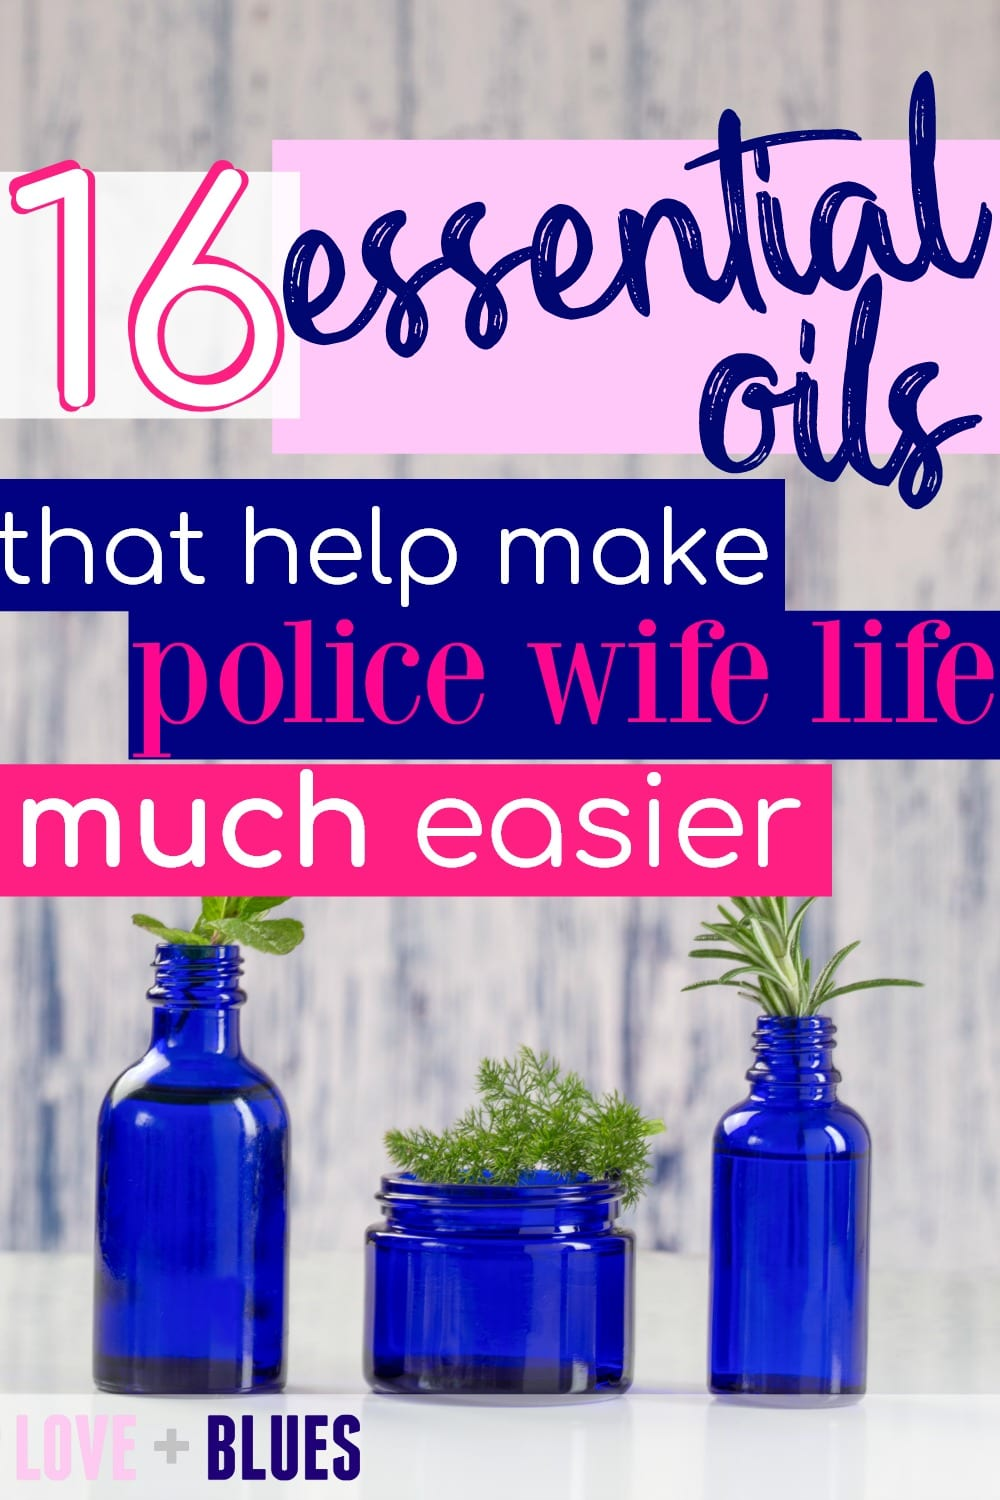 These are awesome! I've never been the crunchy type but I'm a fan of the idea of less stress (and you know, nice smells...) so essential oils couldn't hurt to try ;) #policewifelife #policewife